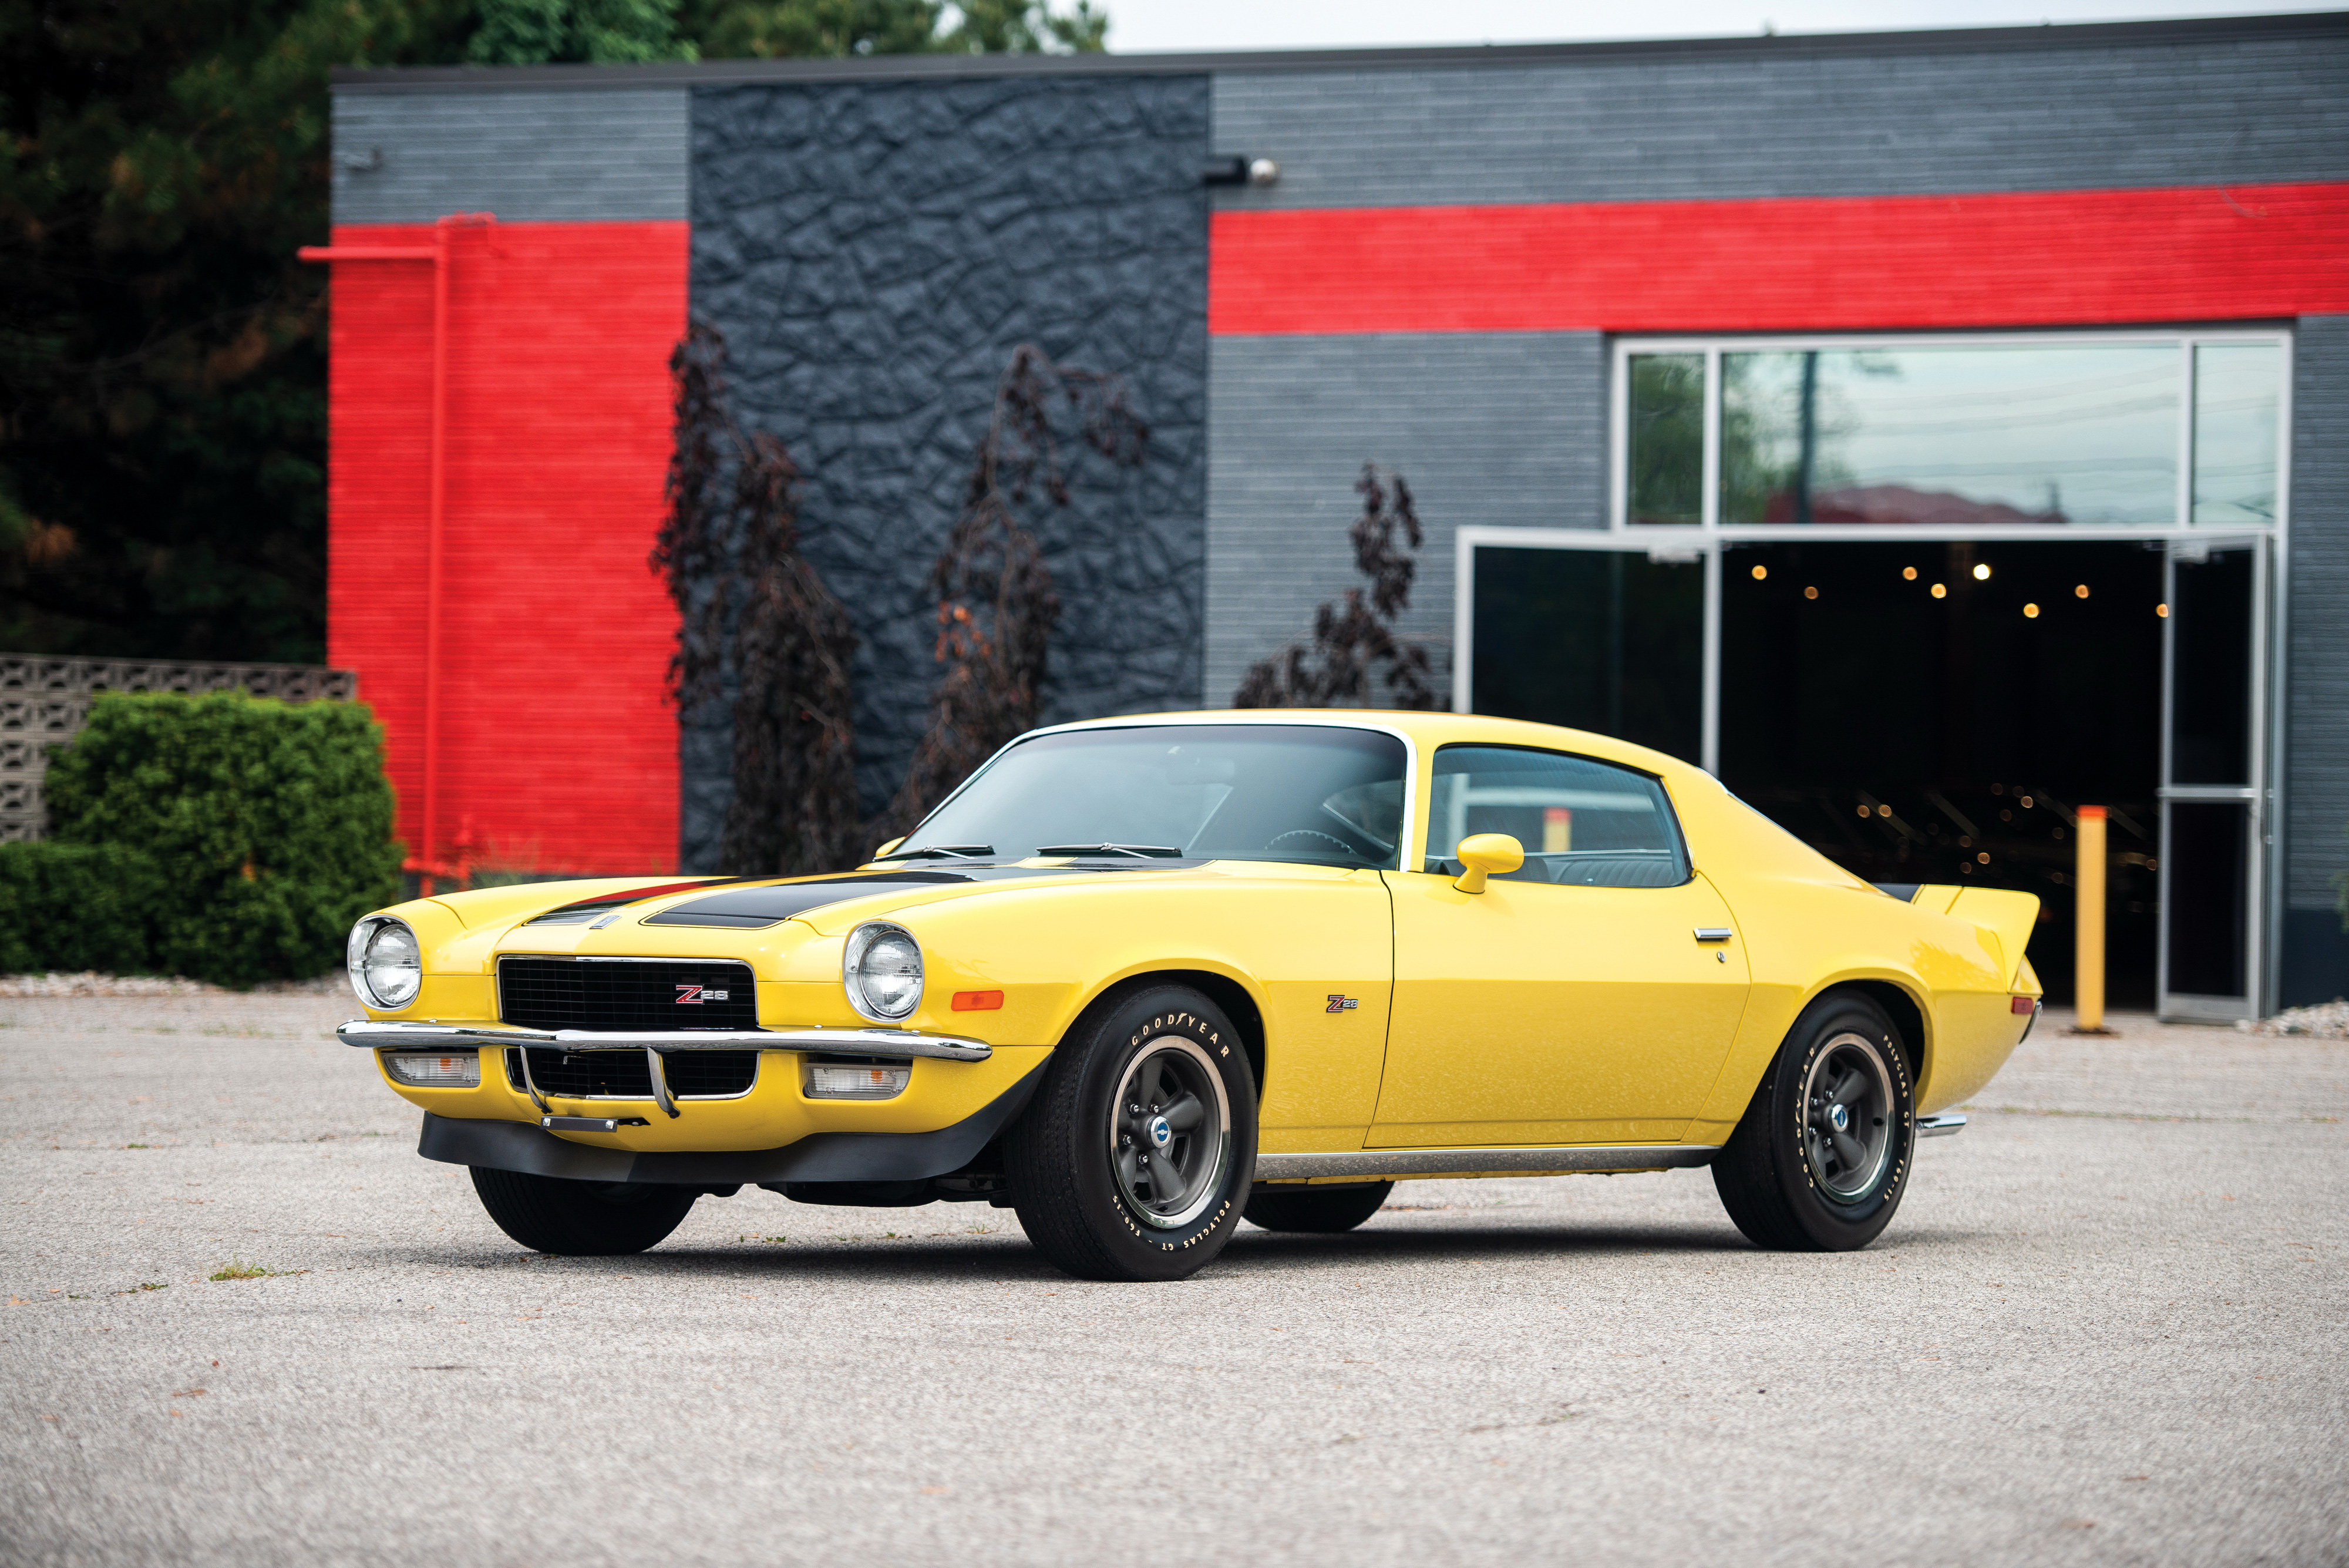 1970 Chevrolet Camaro Z28 Hd Cars 4k Wallpapers Images Backgrounds Photos And Pictures